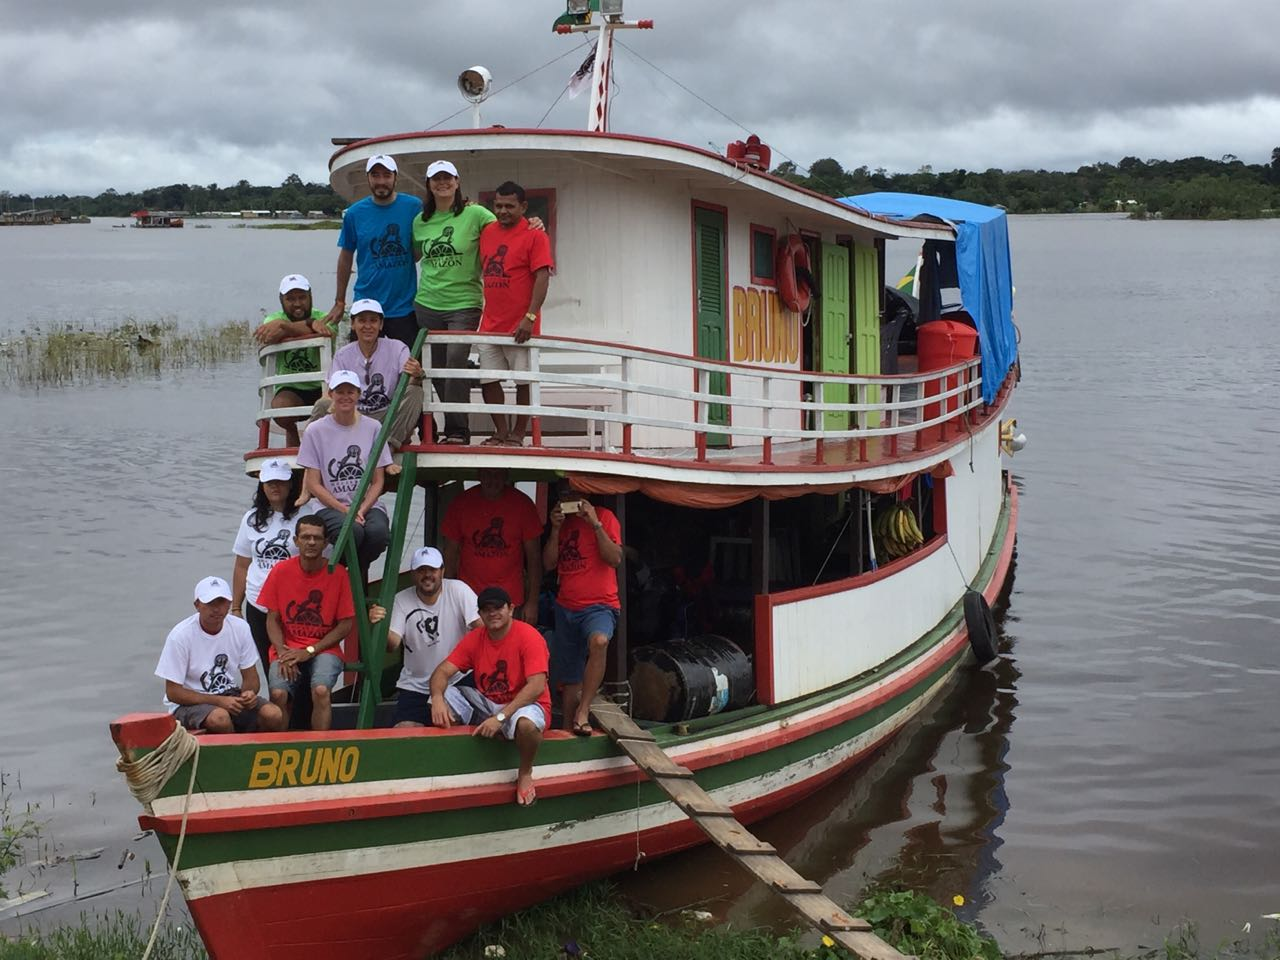 The whole team about ready to depart for the River Eiru.